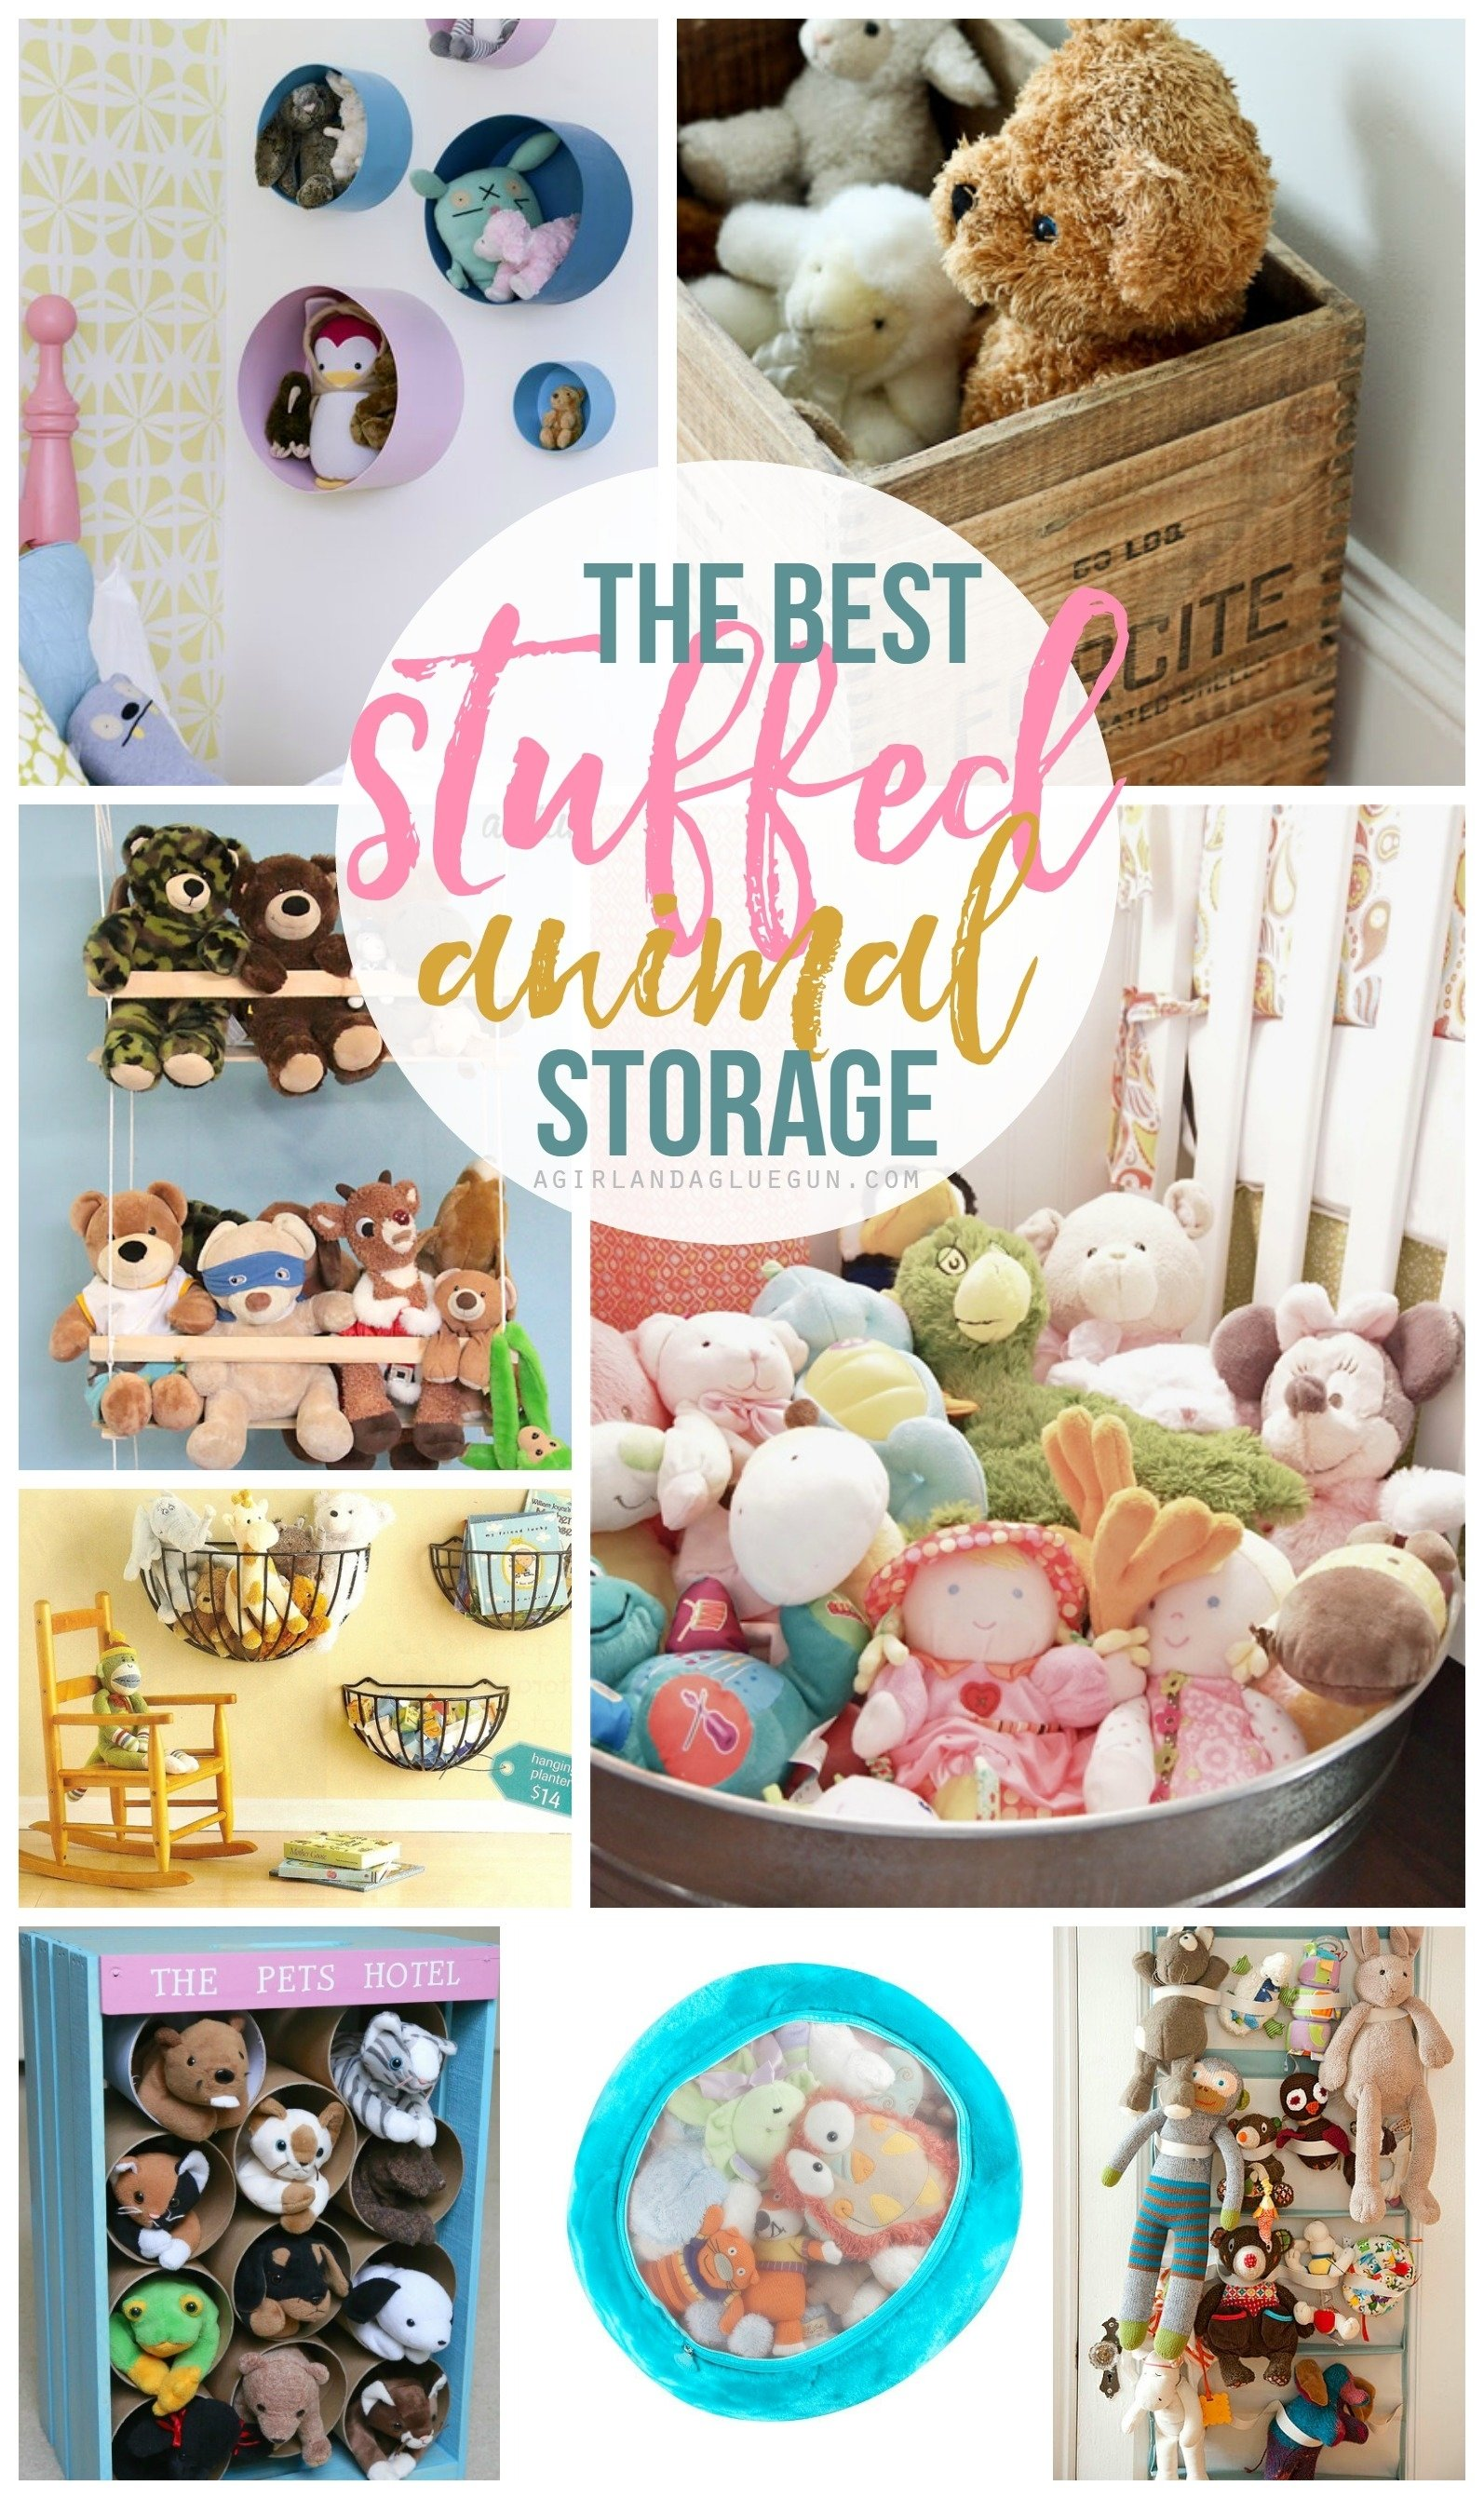 10 Spectacular Ideas For Stuffed Animal Storage stuffed animal storage and organization ideas a girl and a glue gun 1 2021